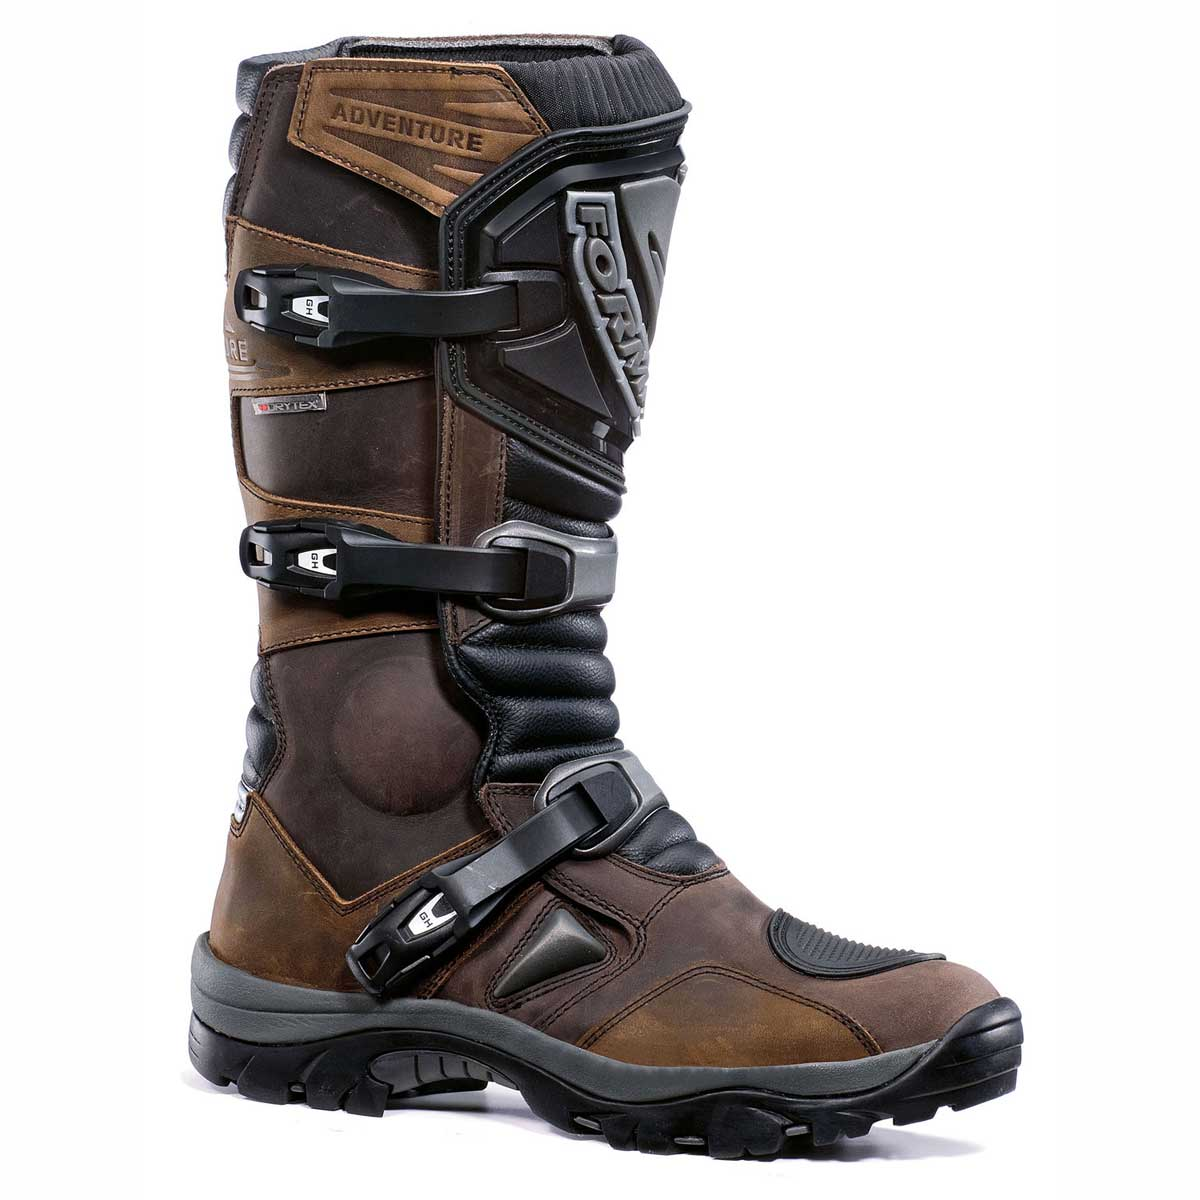 Riding Boots Part 1 - Choosing Your Motorcycle Boots - BikesRepublic